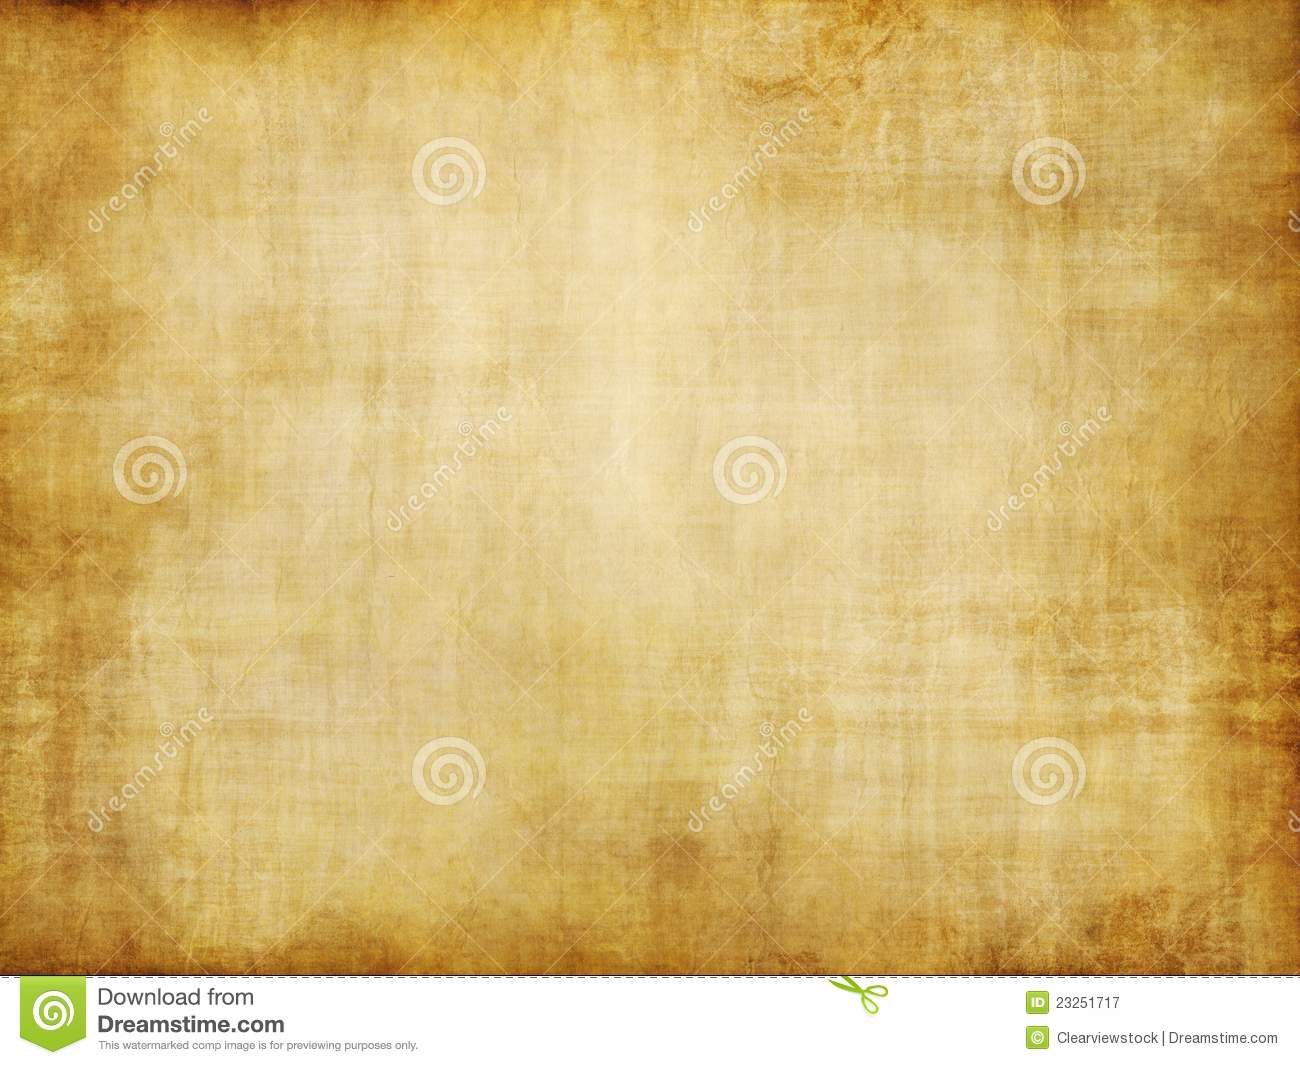 Download Old Yellow Brown Vintage Parchment Paper Texture Stock Illustration - Illustration of brown, abstract: 23251717